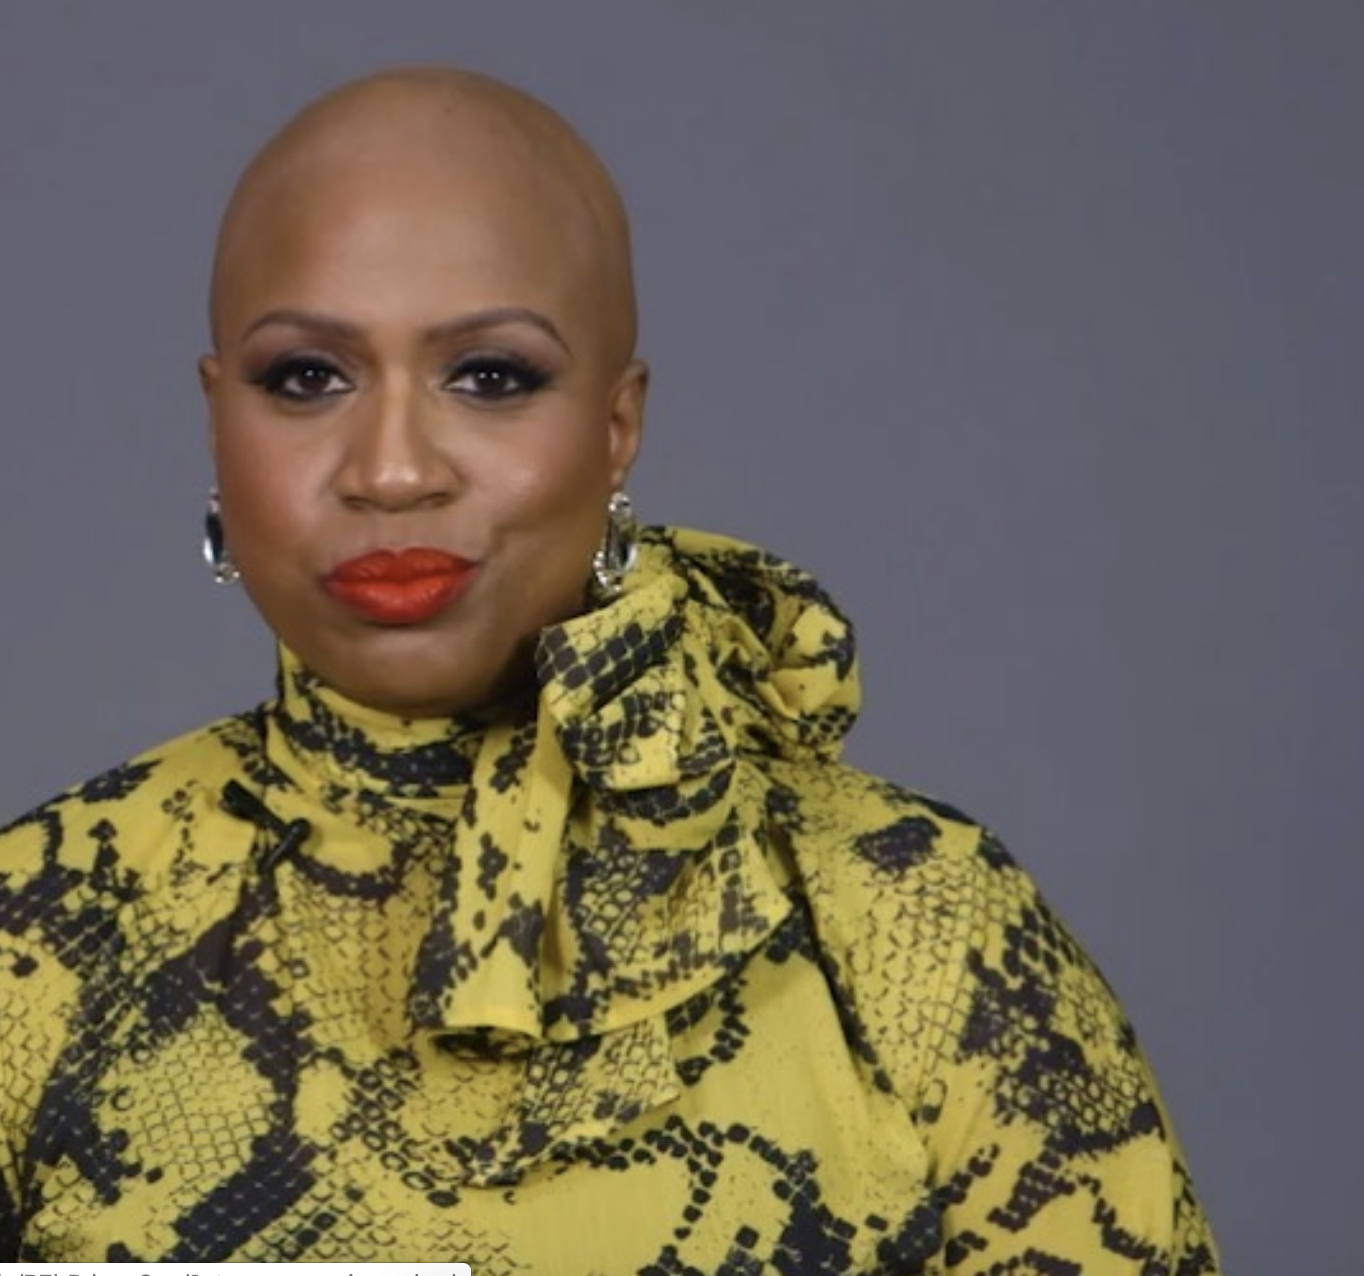 """Rep. Ayanna Pressley Reveals She's Gone Bald: """"As a Black Woman, the Personal Is Political"""""""